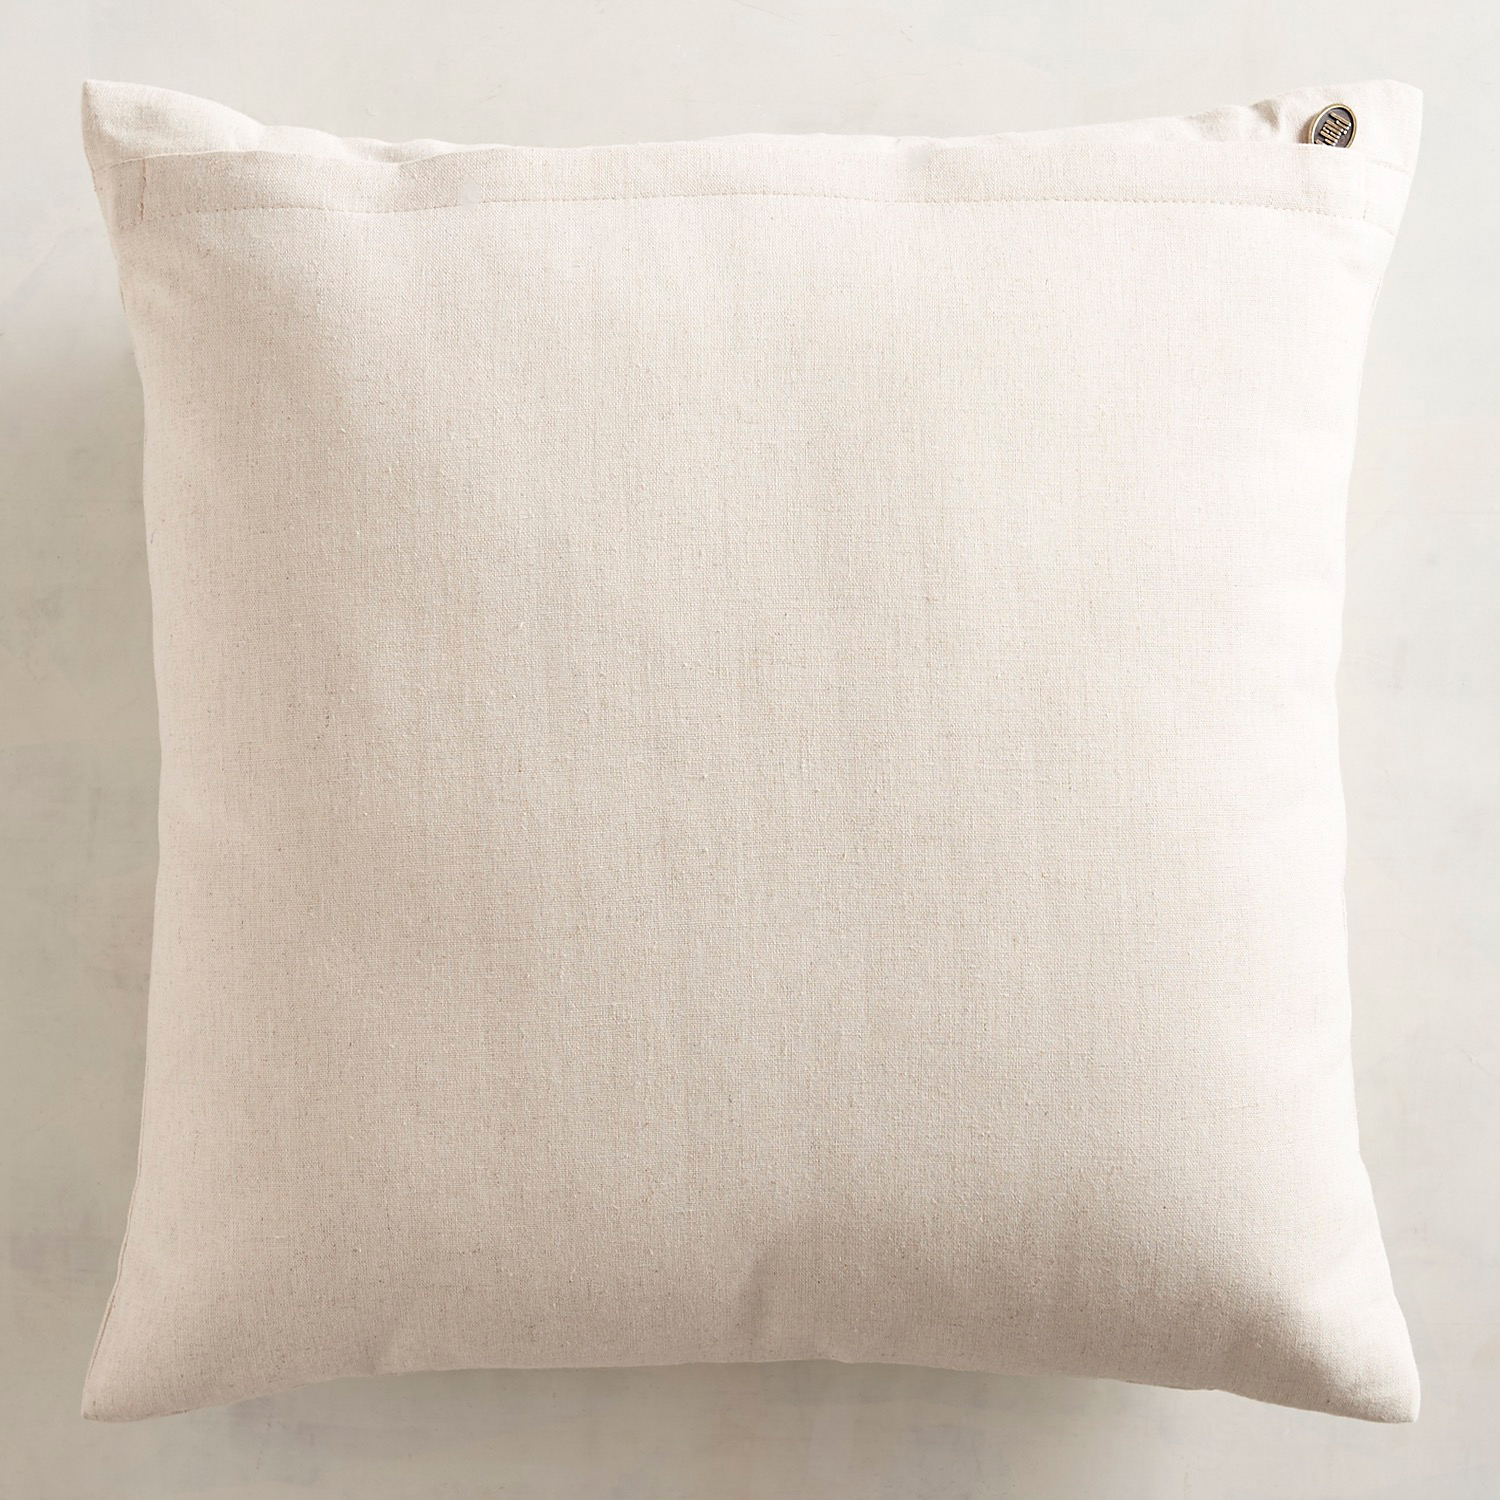 Embroidered Montauk Natural Floral Pillow